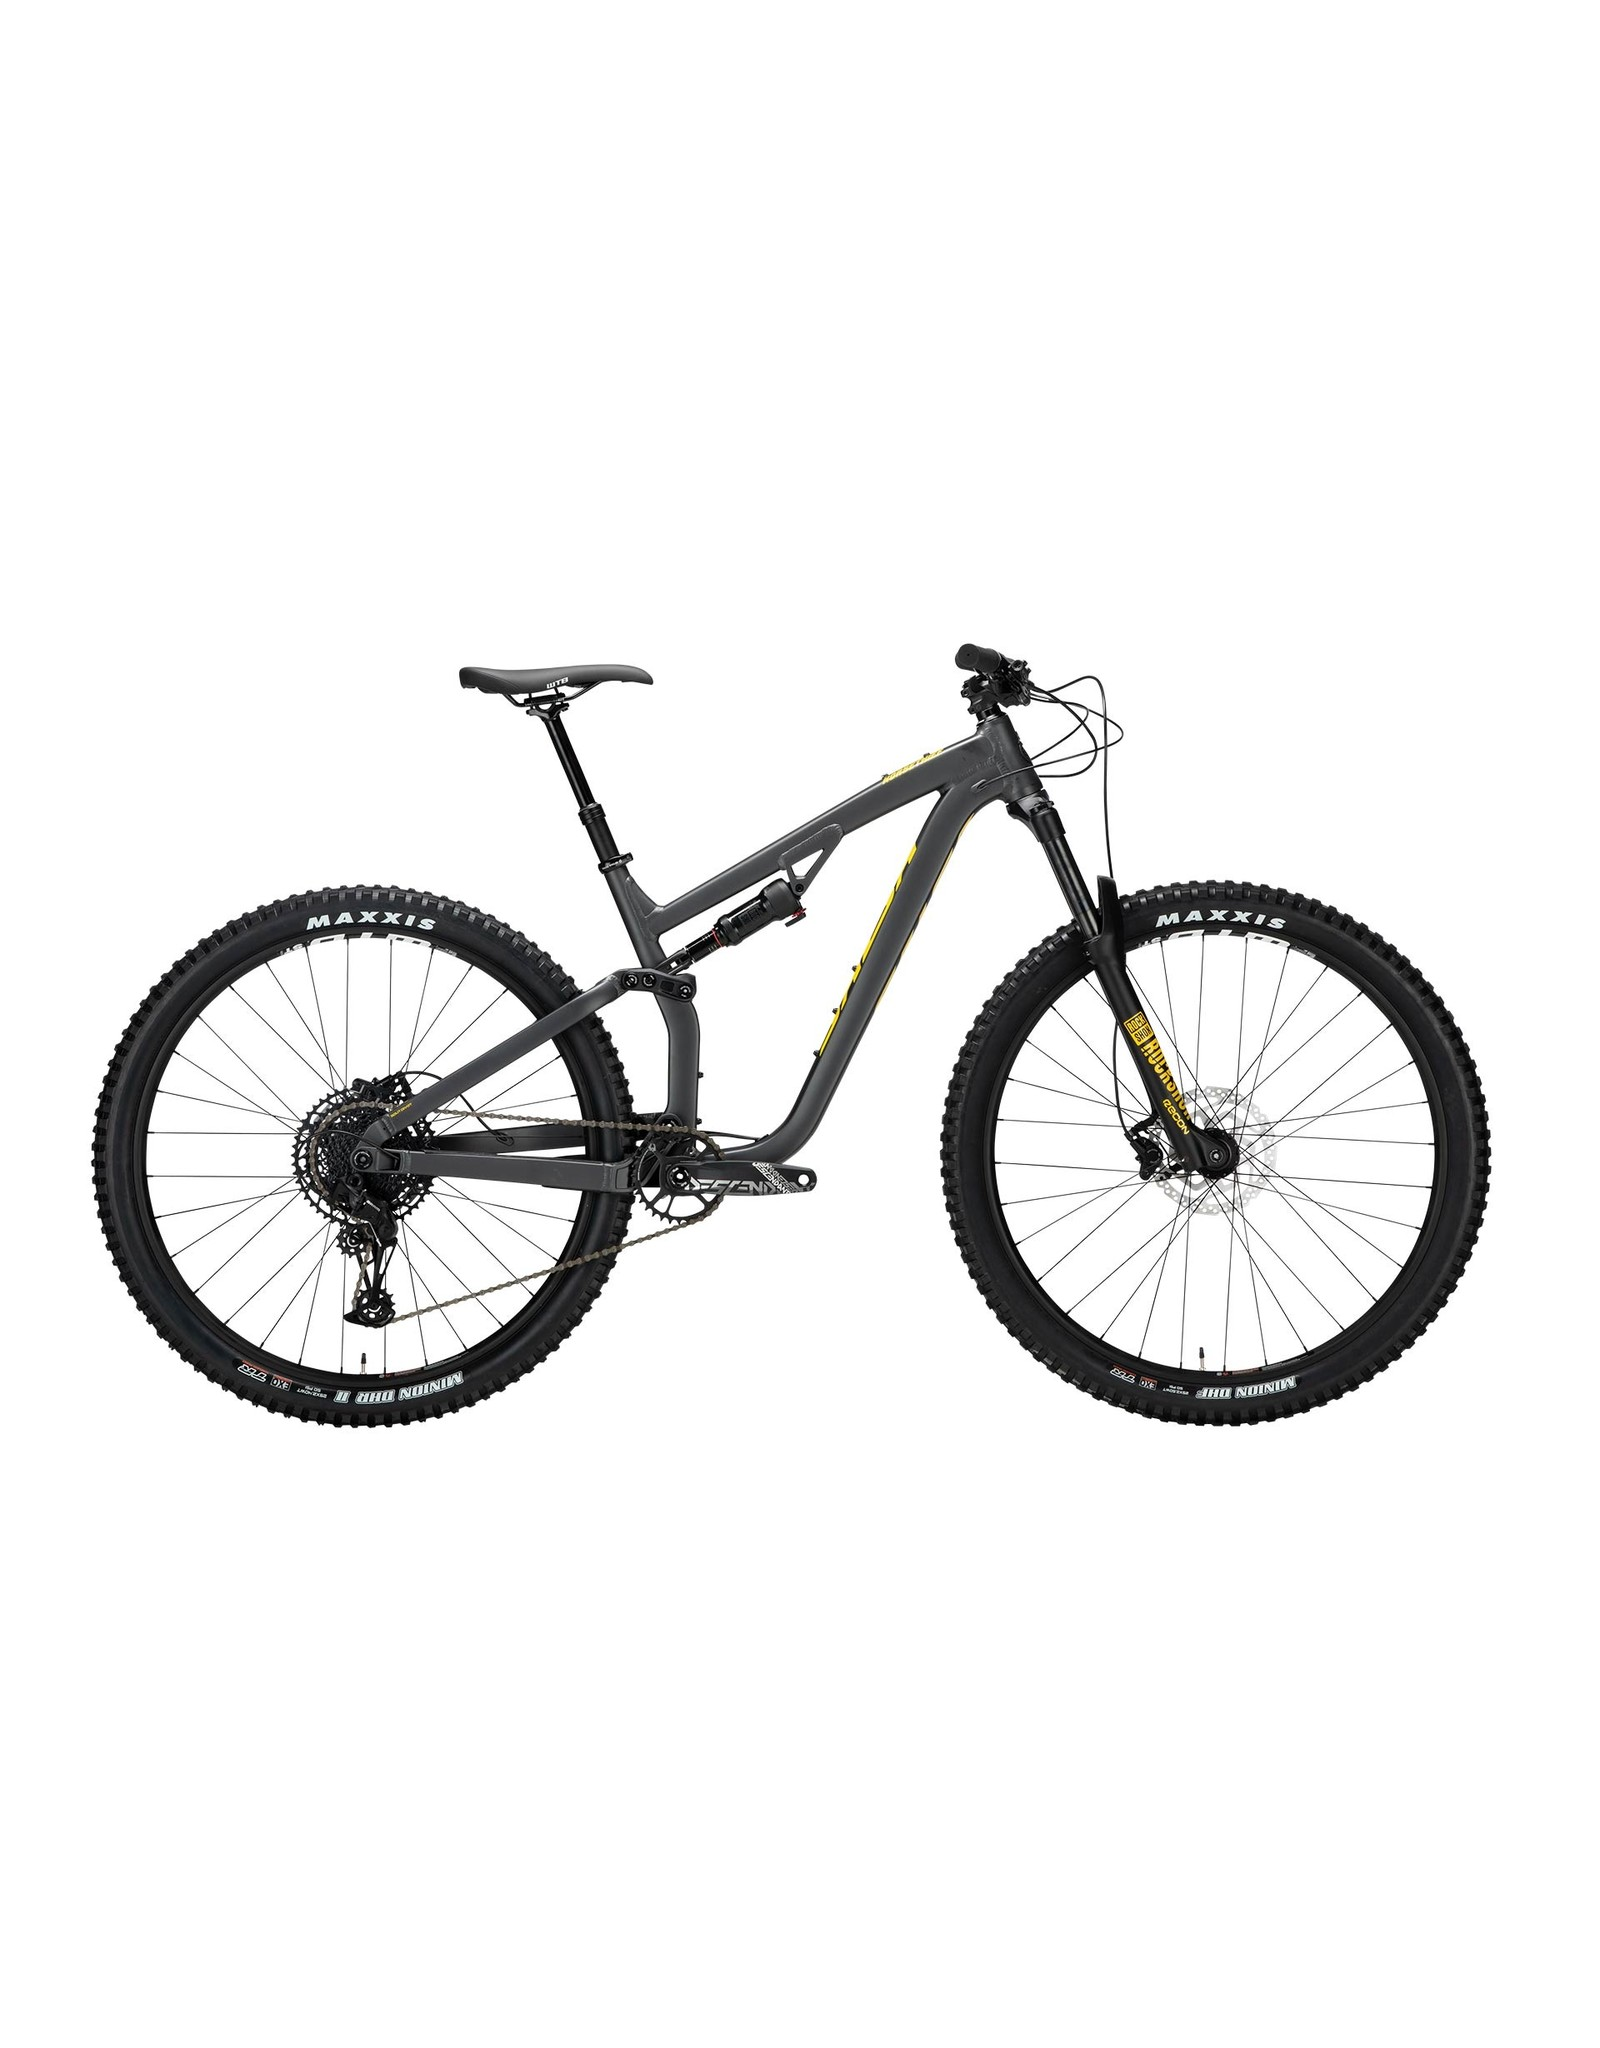 "Salsa Salsa Horsethief SX Bike - 29"", Aluminum, Medium, Dark Gray"